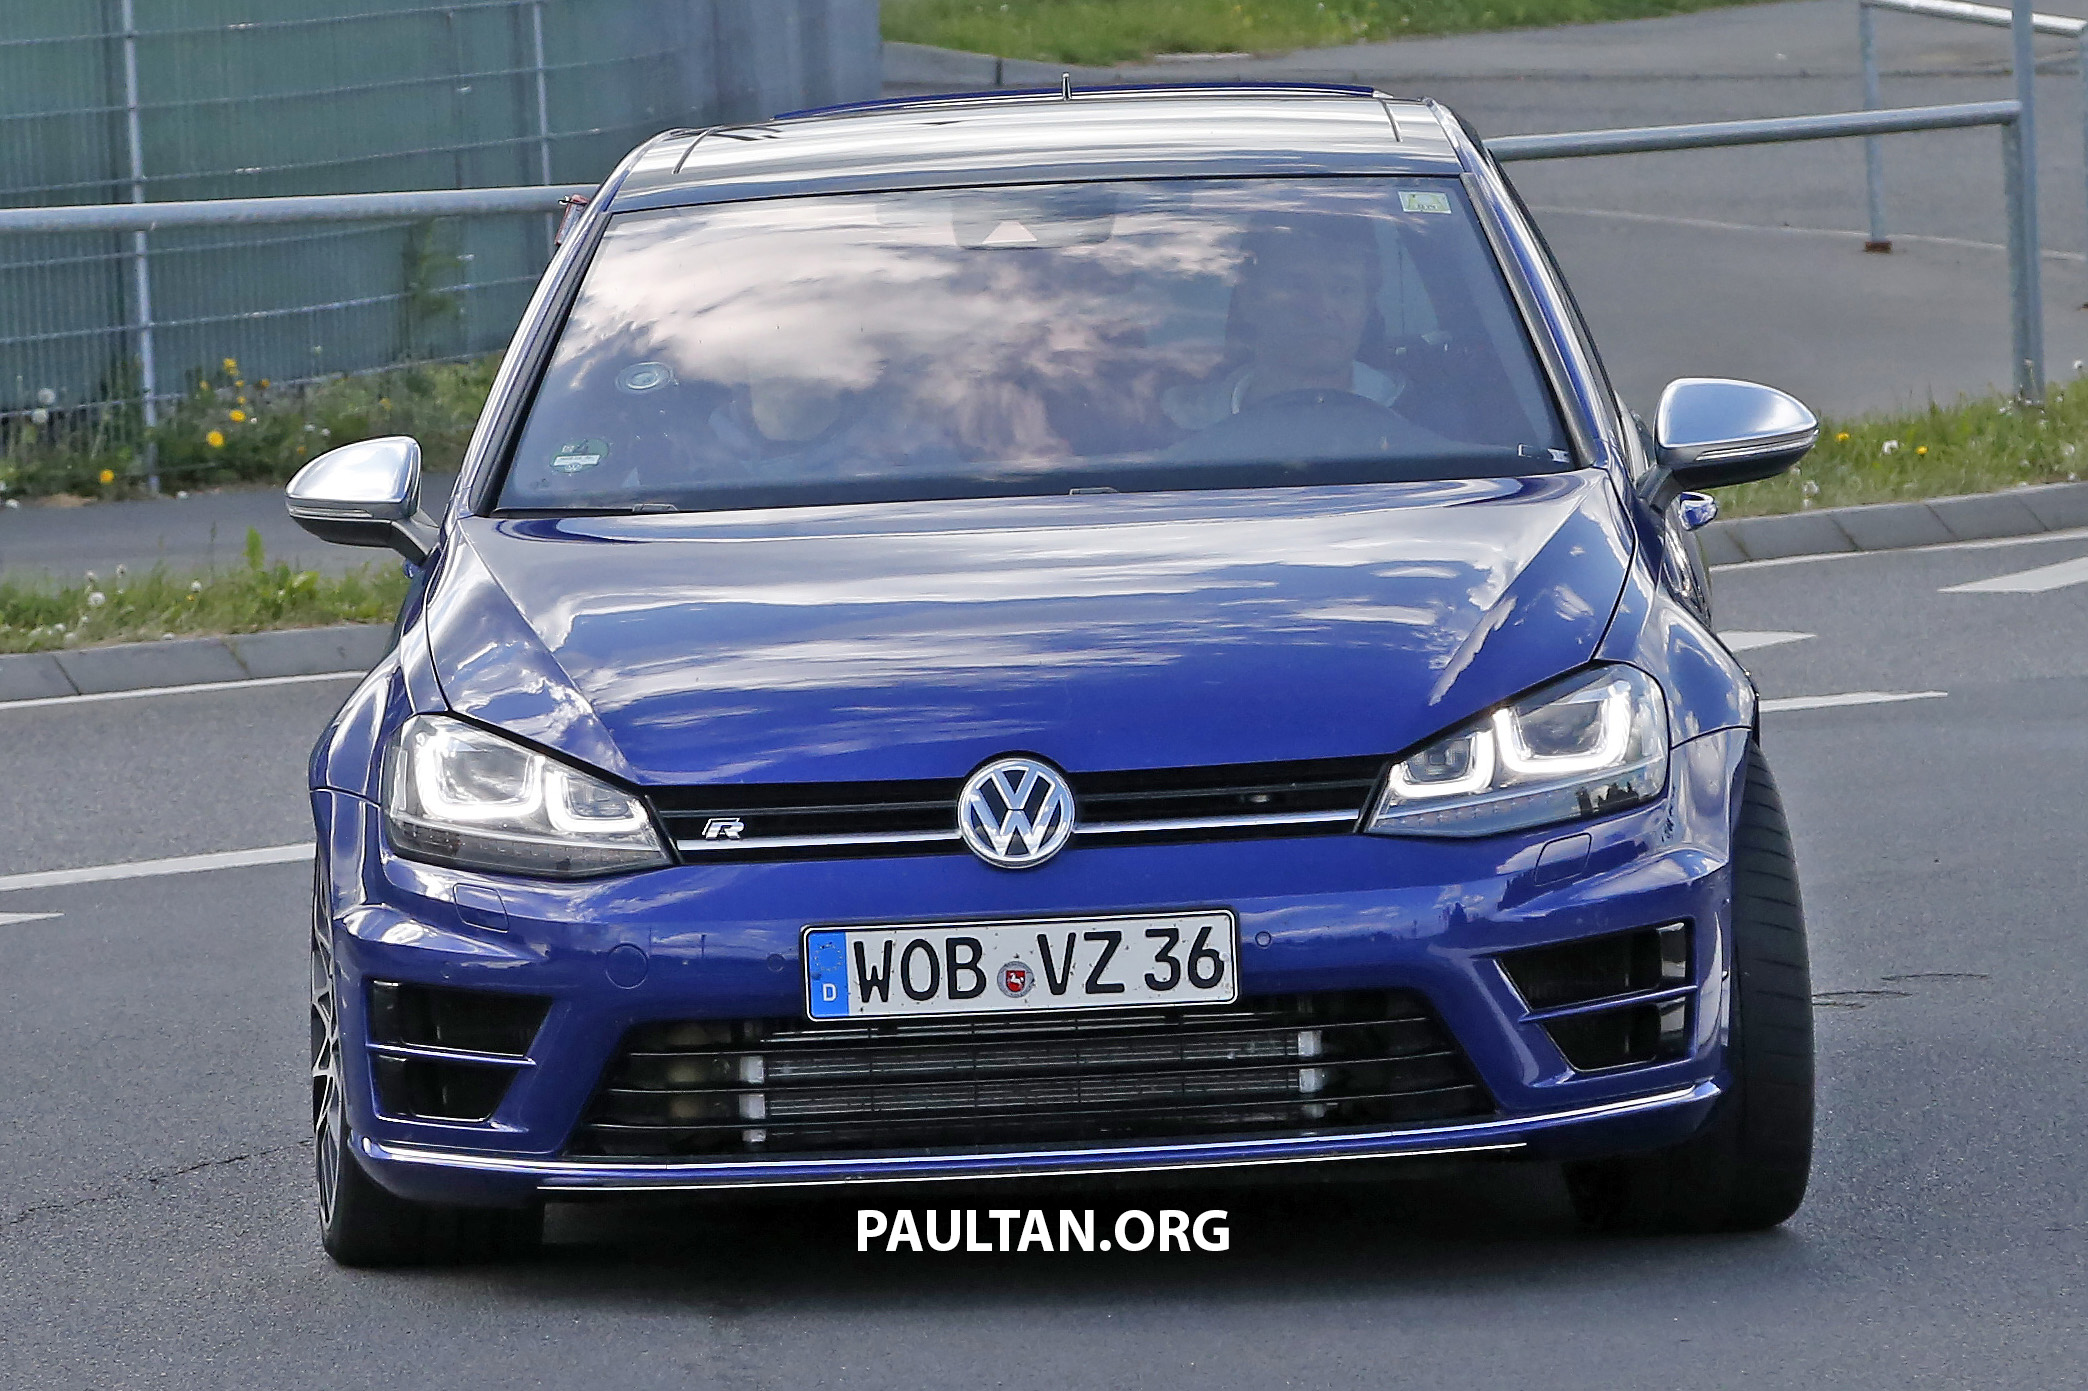 volkswagen golf r 400 production to be very limited. Black Bedroom Furniture Sets. Home Design Ideas